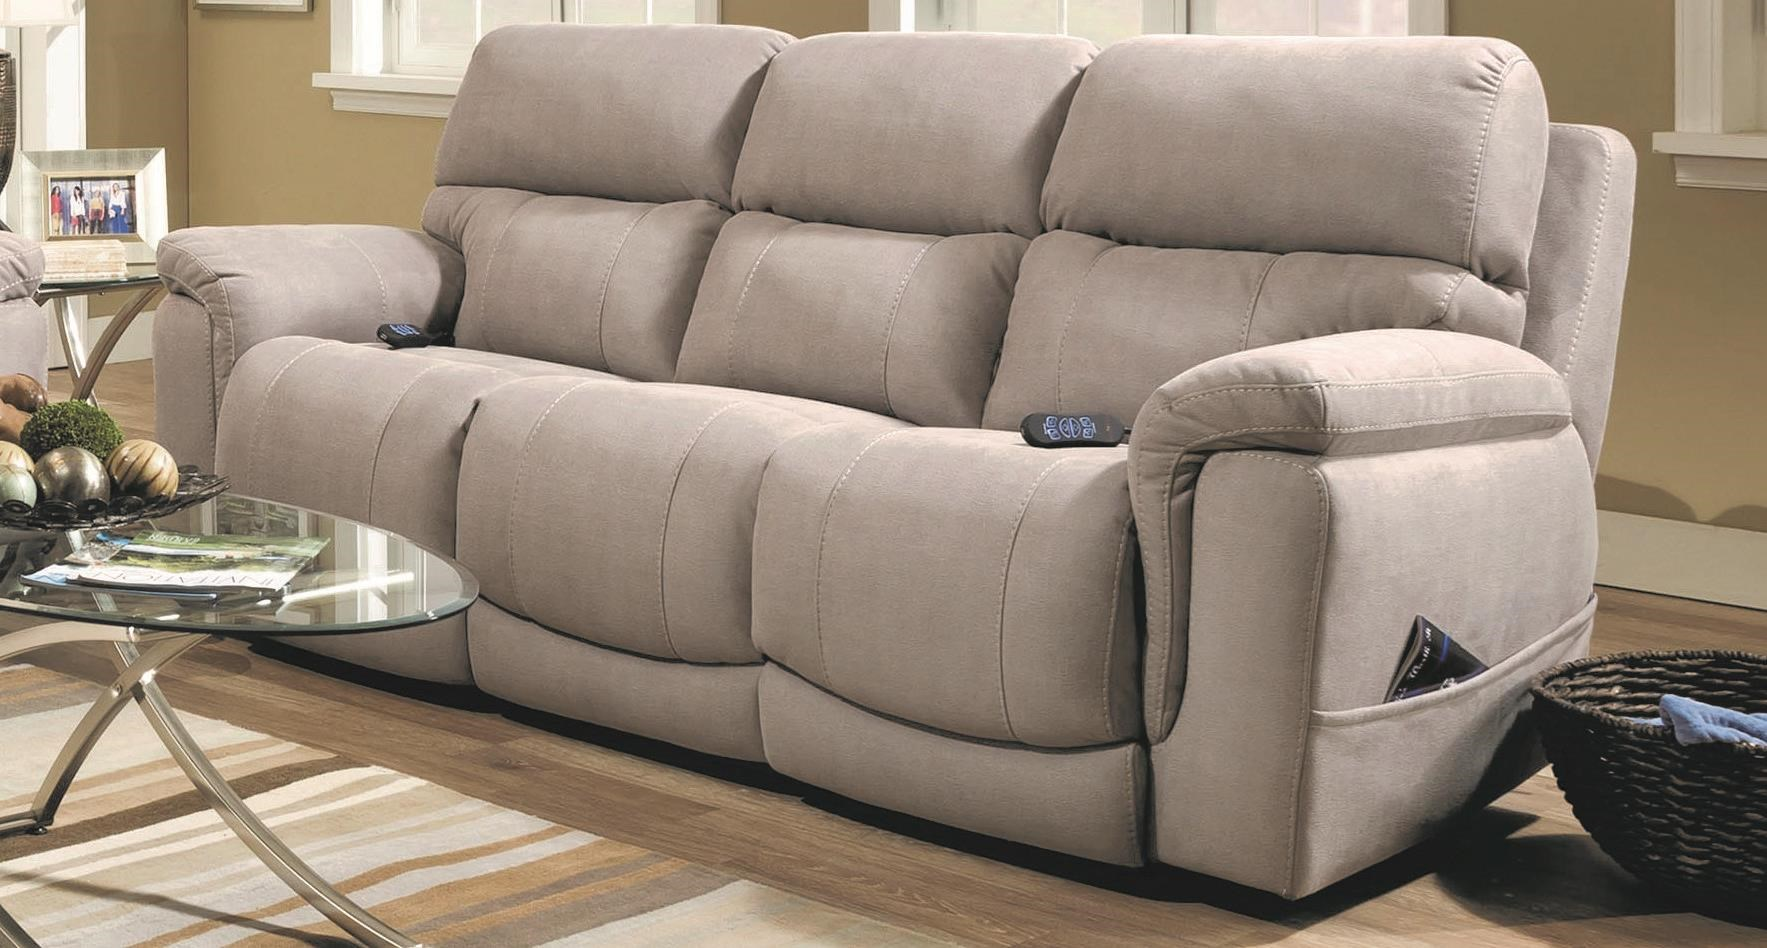 Ridley Ridley Power Sofa with USB by HomeStretch at Morris Home